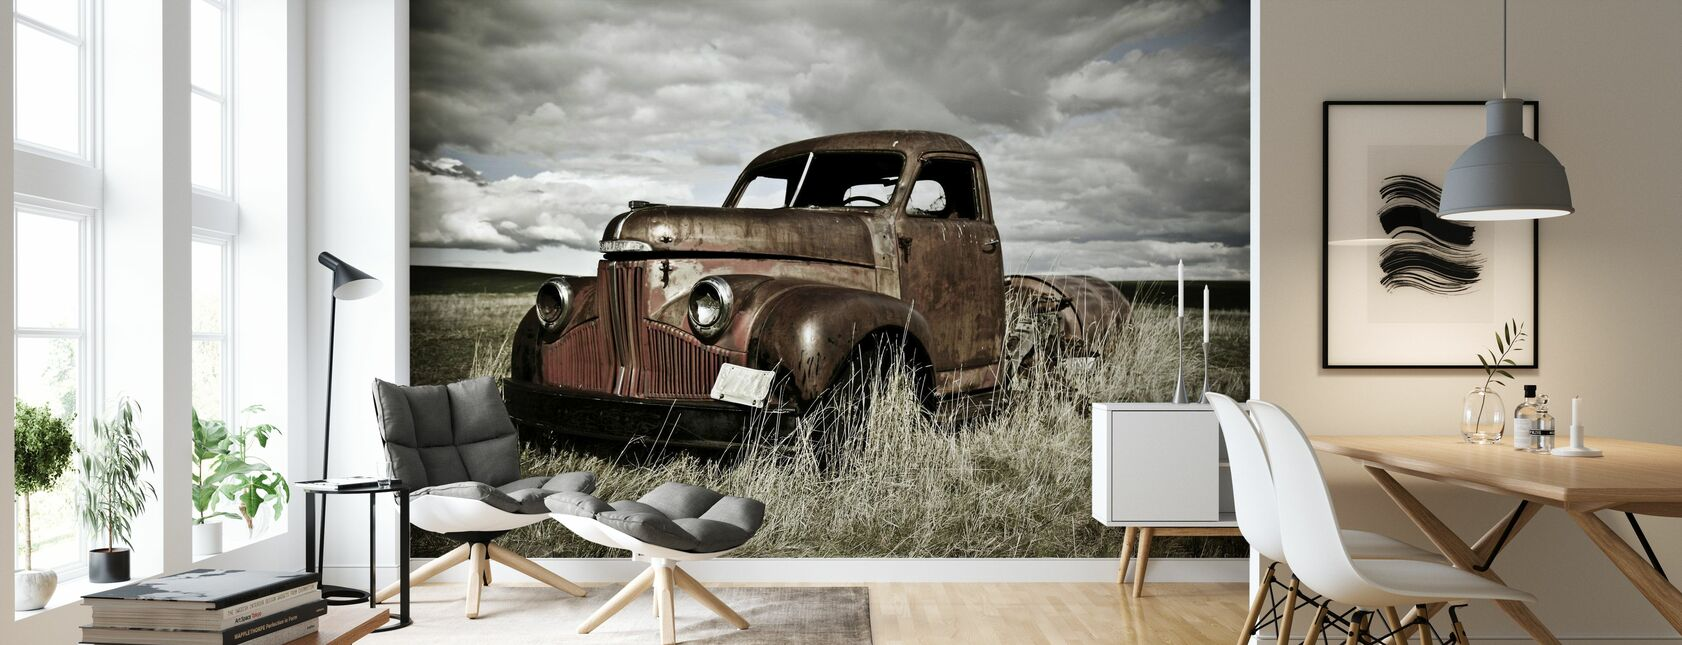 Old Truck Out in the Field - Wallpaper - Living Room